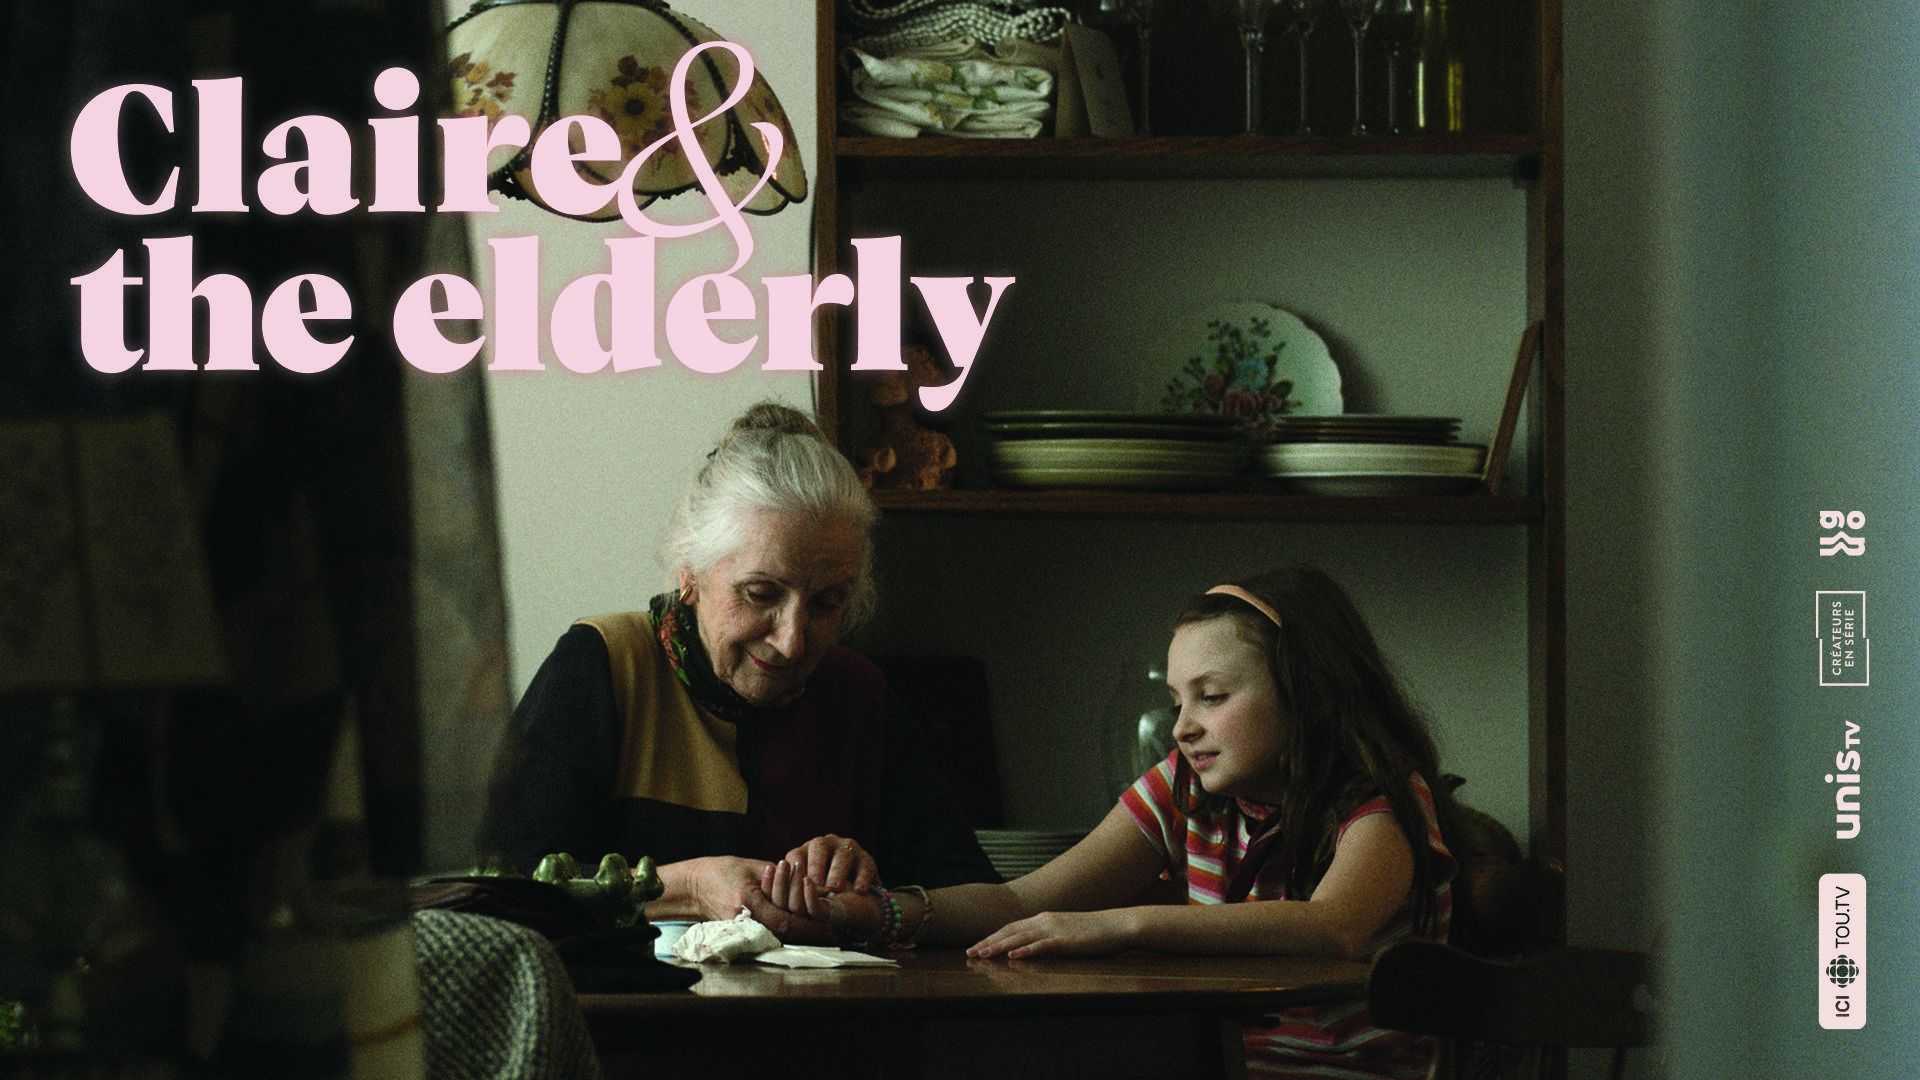 Claire and the elderly